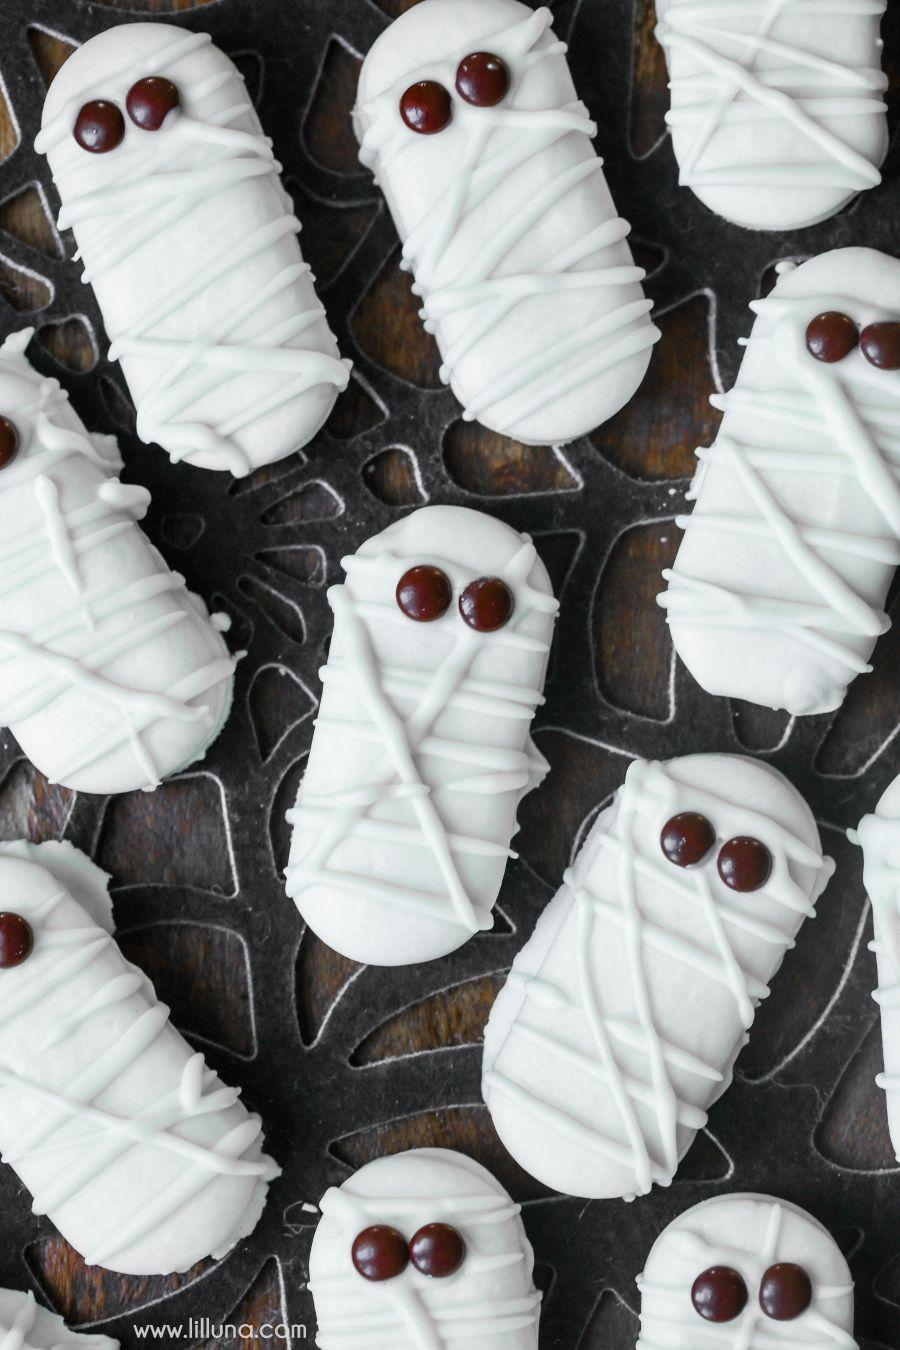 """<p>Looking for a little treat to make with the littles ones? These three-ingredient mummies are a great option.</p><p><strong>Get the recipe at <a href=""""https://lilluna.com/mummy-cookies/"""" rel=""""nofollow noopener"""" target=""""_blank"""" data-ylk=""""slk:Lil' Luna"""" class=""""link rapid-noclick-resp"""">Lil' Luna</a>.</strong> </p>"""